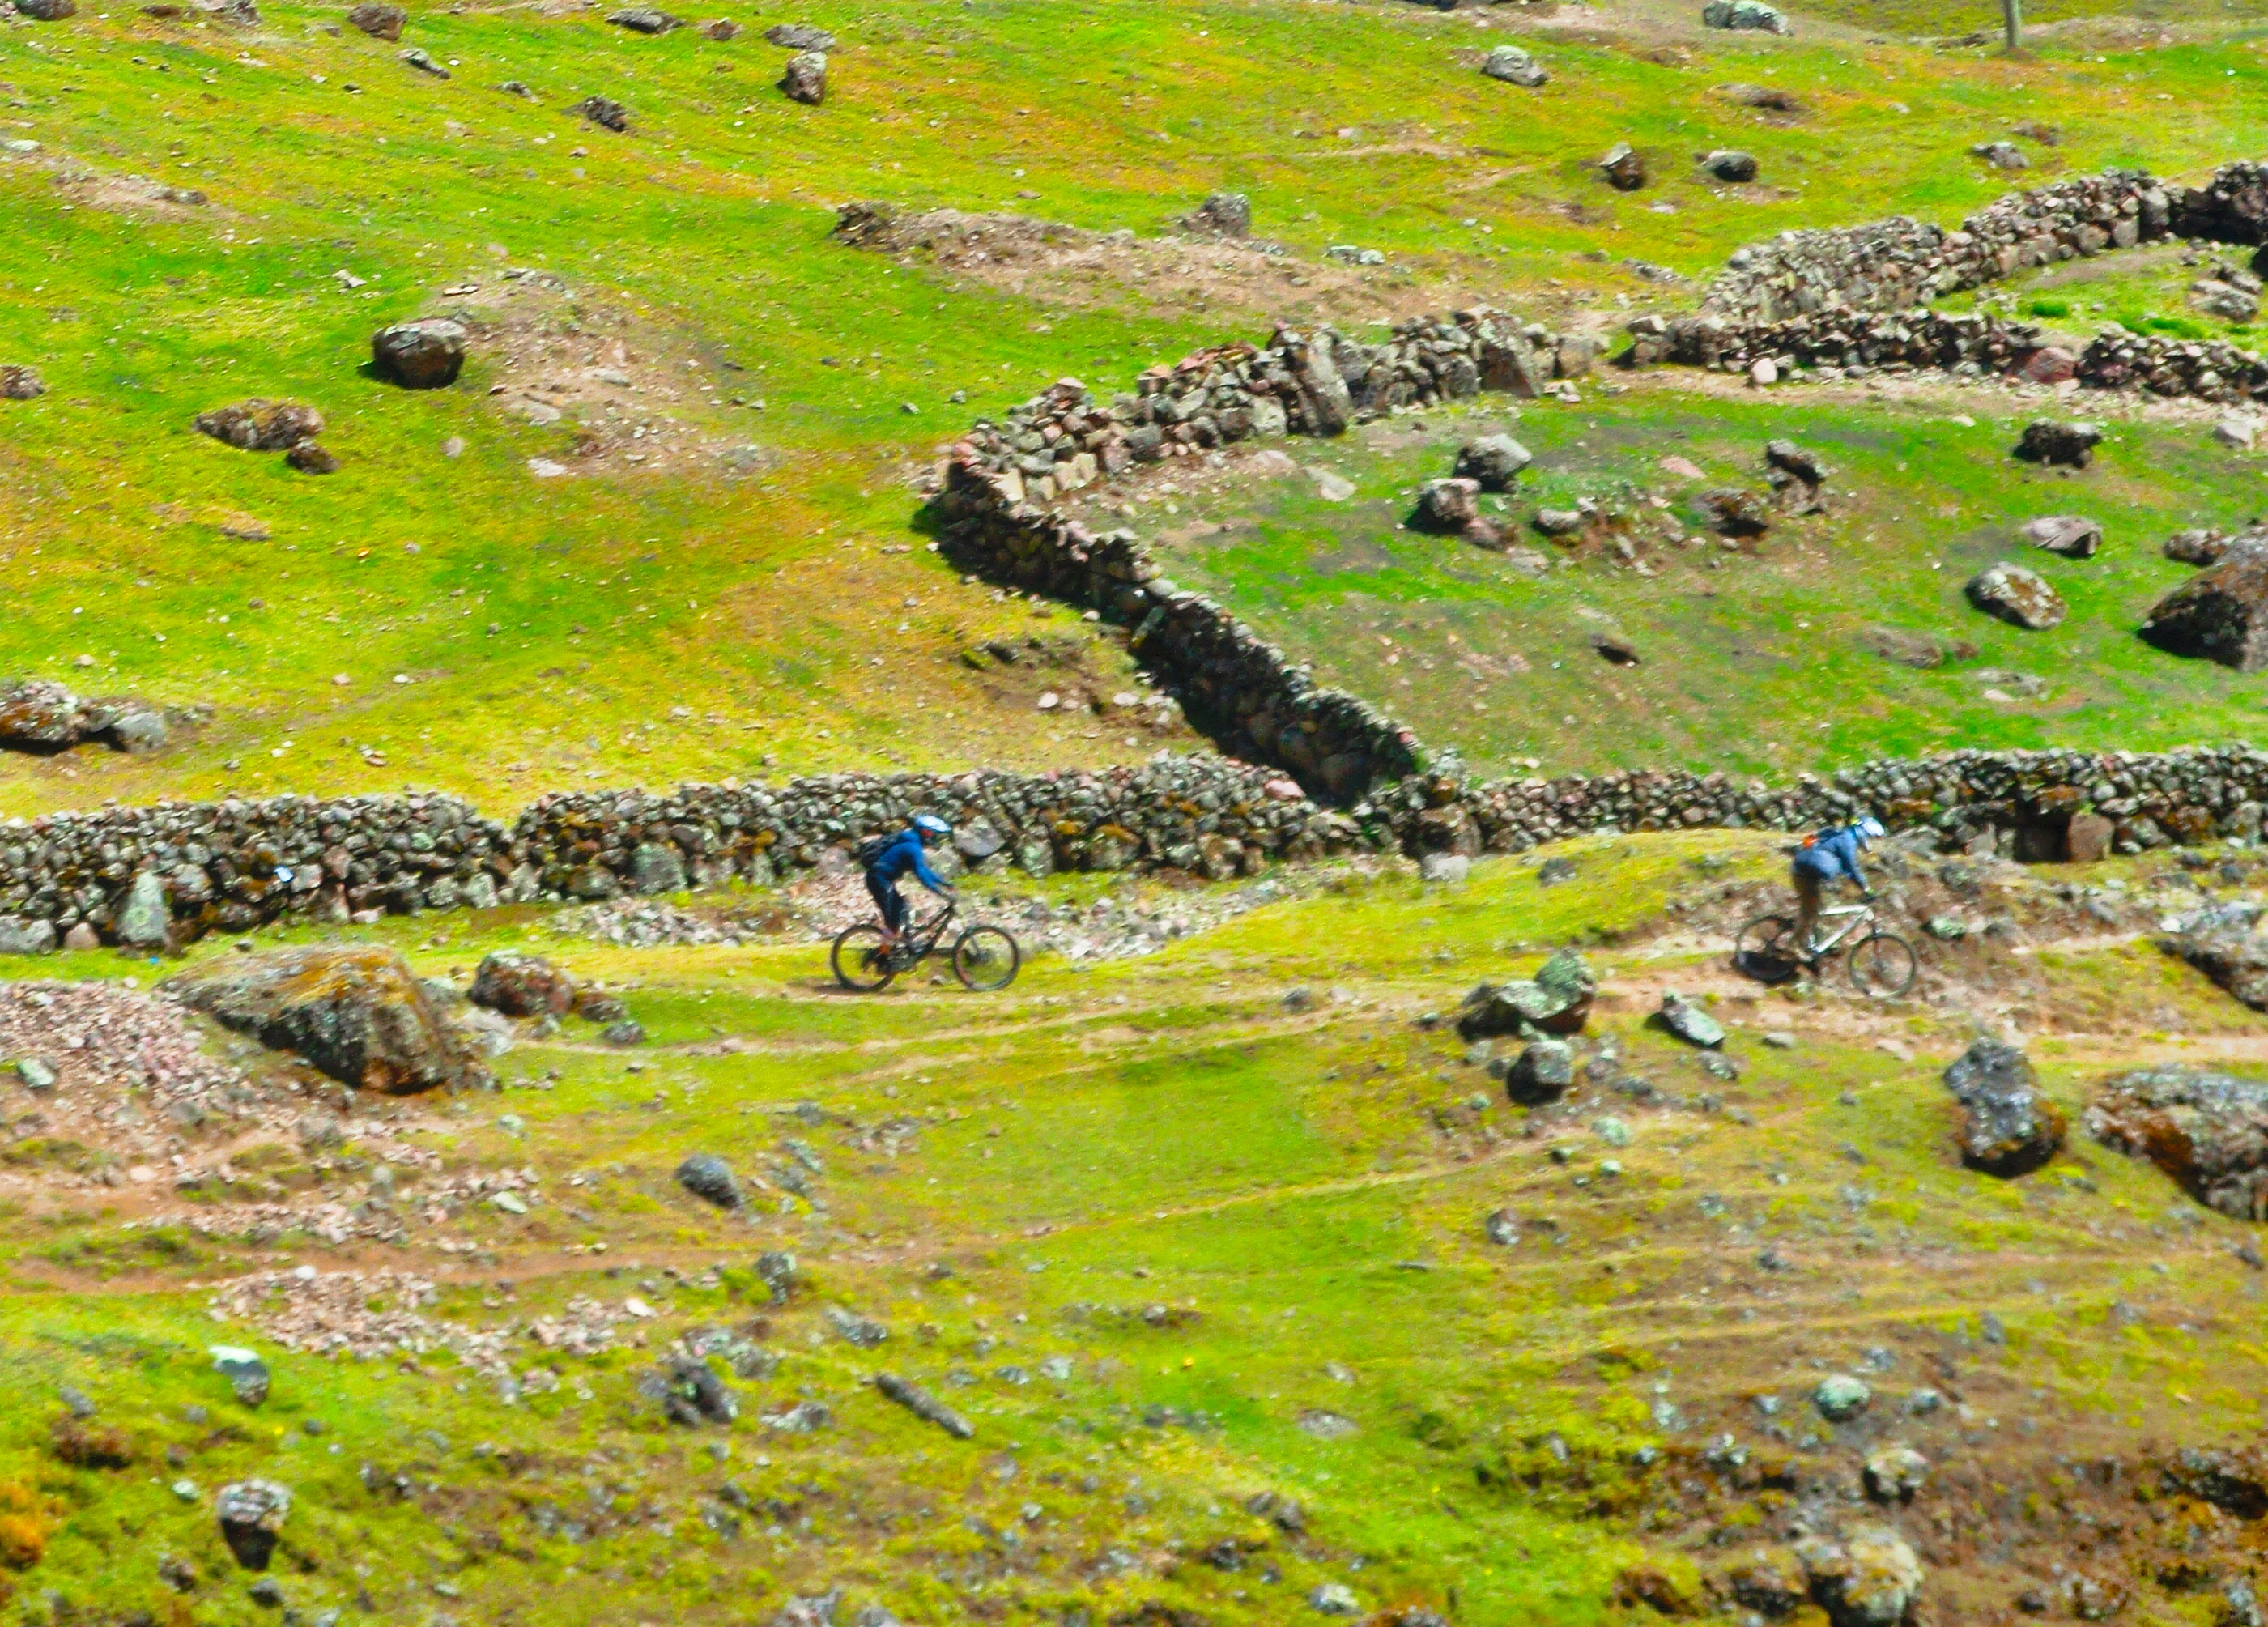 Image of two mountain bike riders in Peru's Sacred Valley